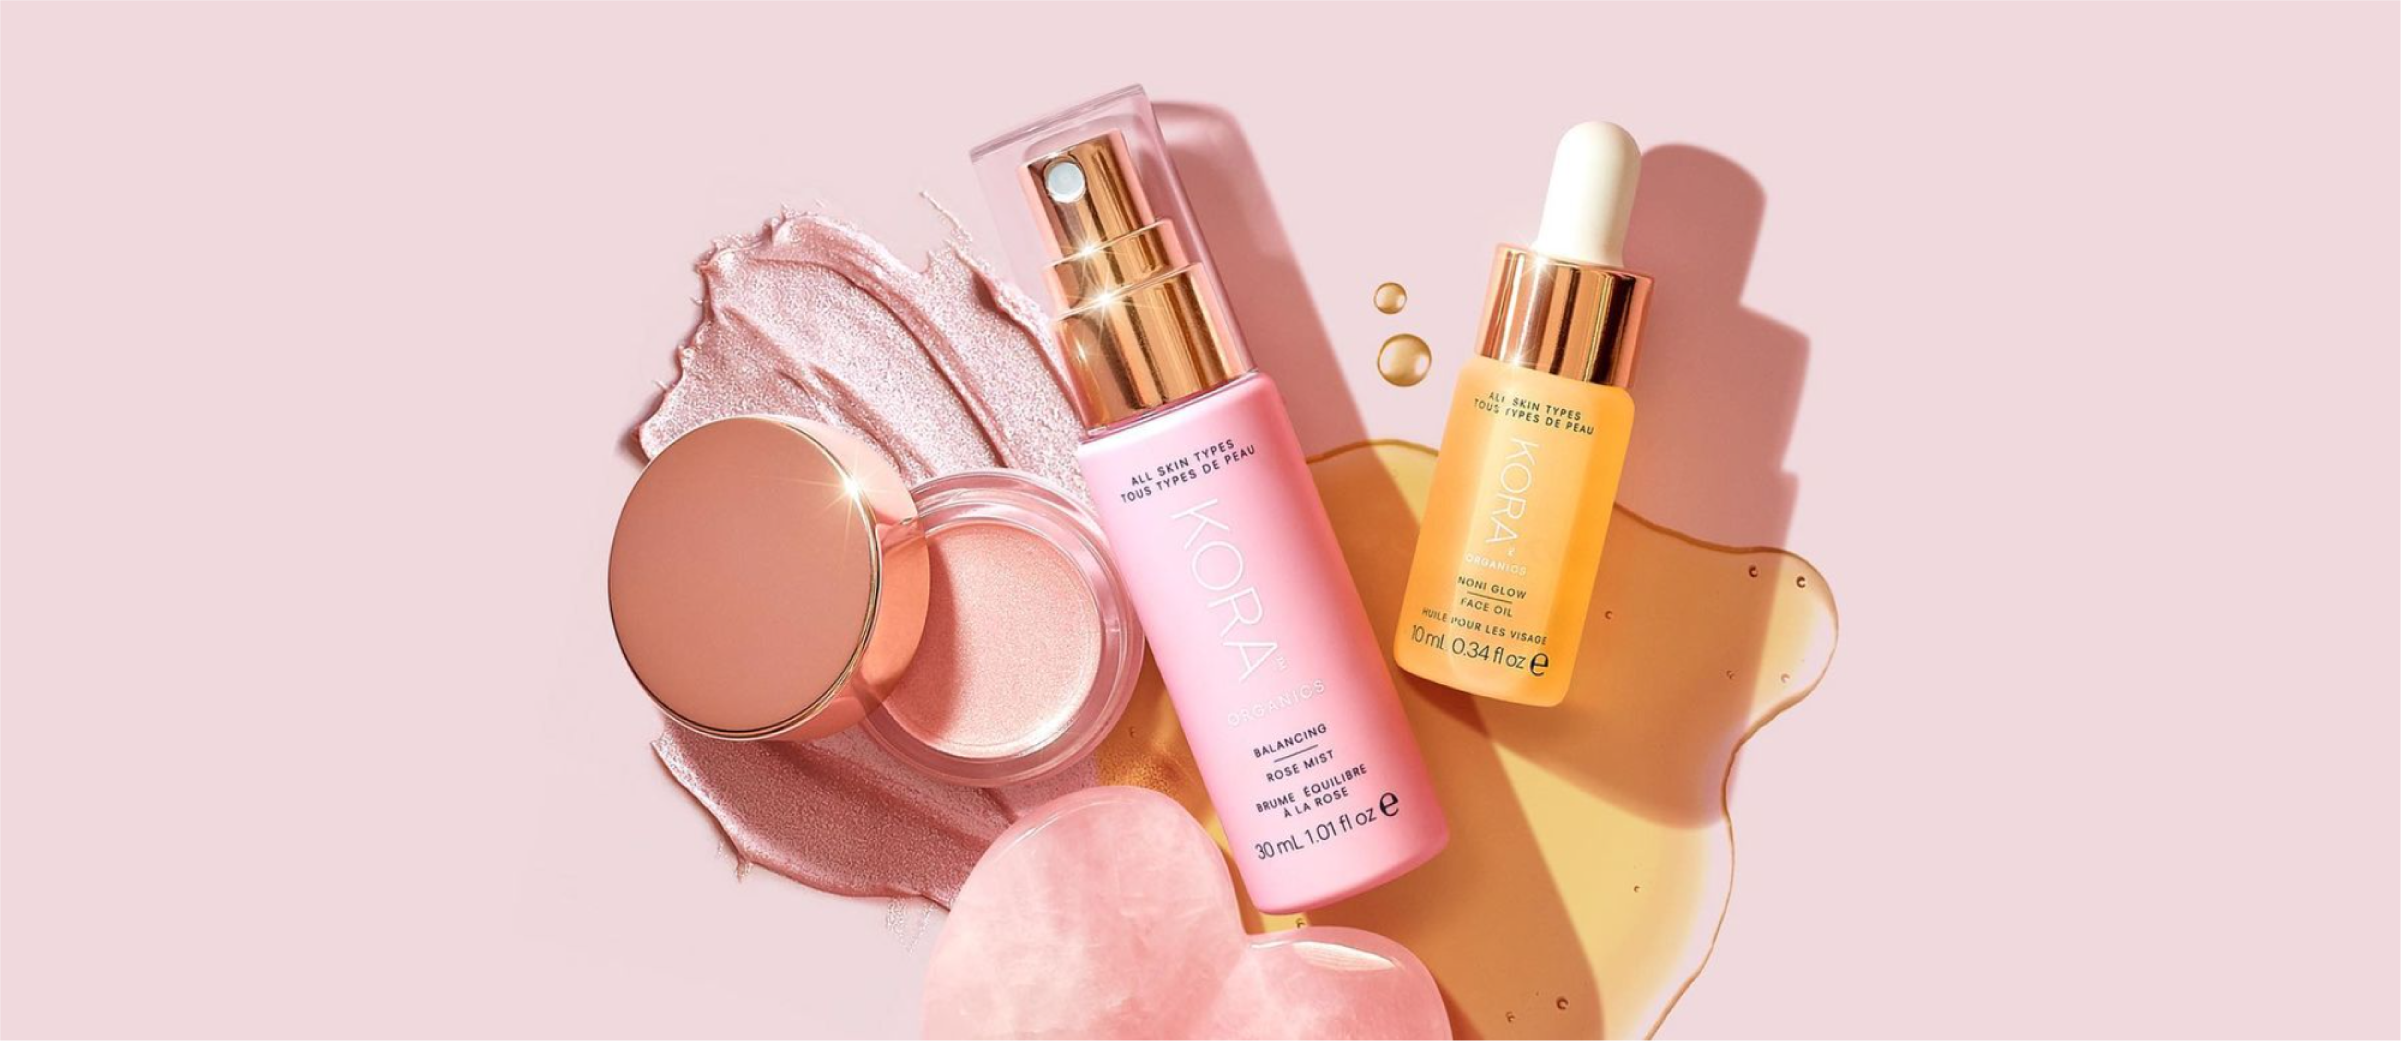 Kora Organics Dishes On Instagram and Pinterest Content Planning